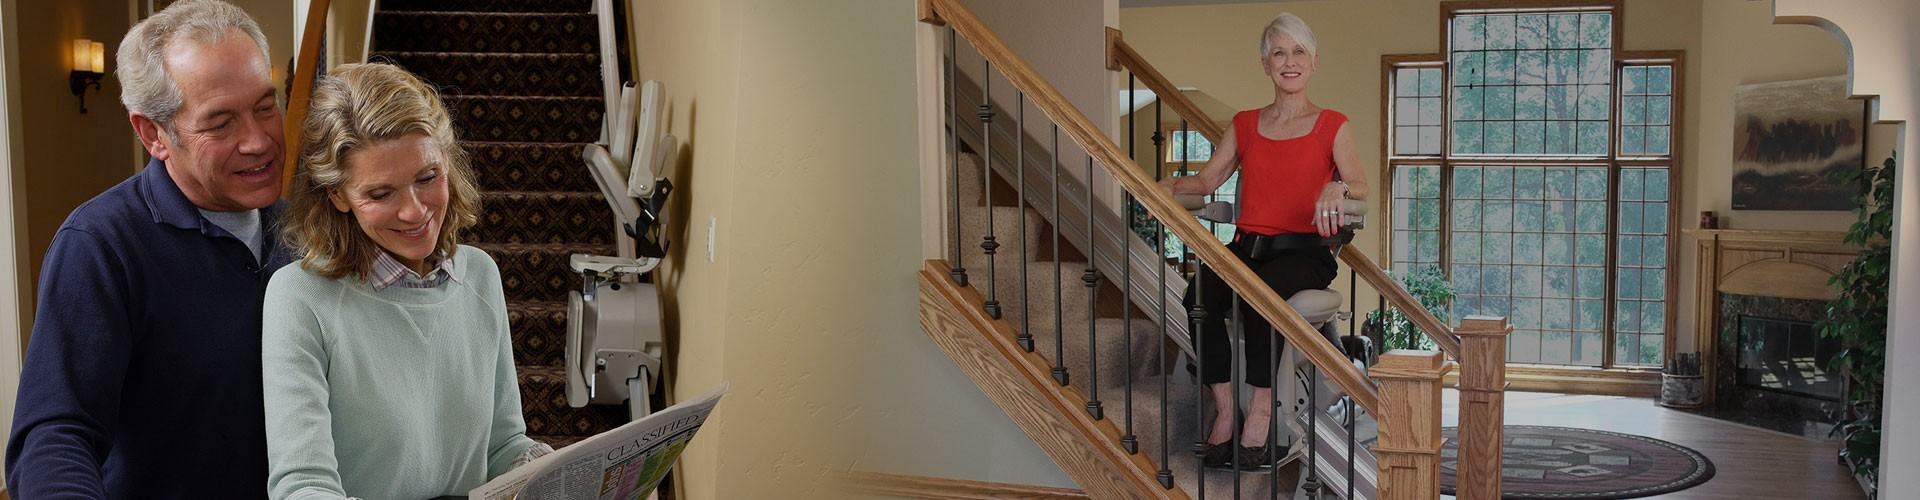 Bruno Stair Lifts (1 of 1)